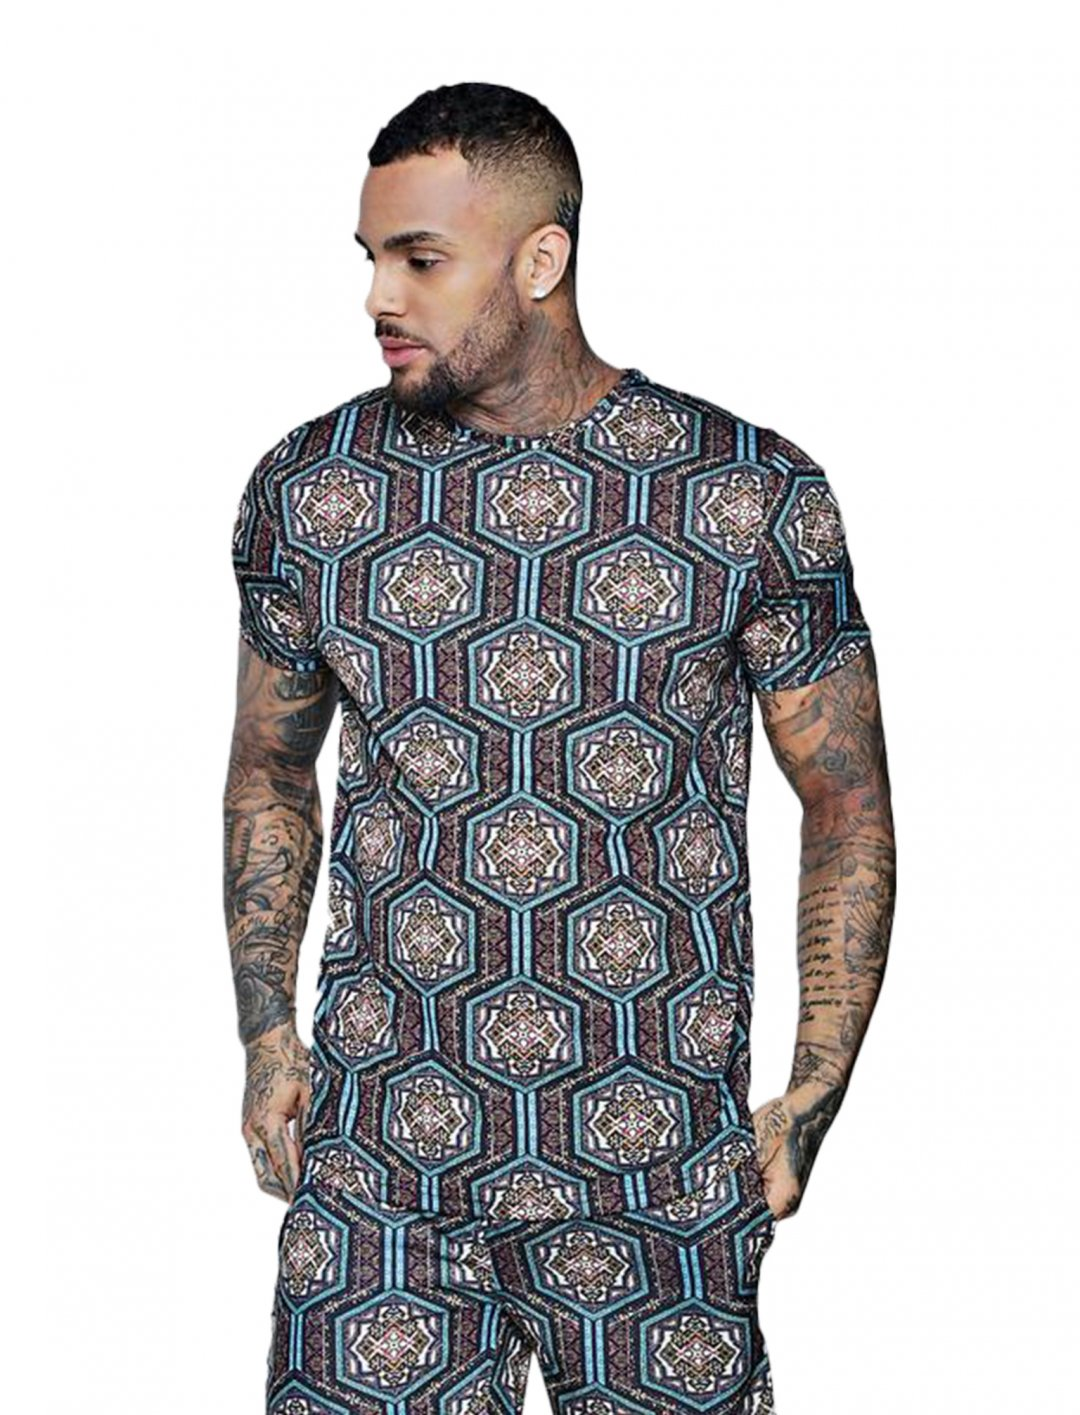 "BoohooMAN Printed Shirt {""id"":5,""product_section_id"":1,""name"":""Clothing"",""order"":5} boohooMAN"